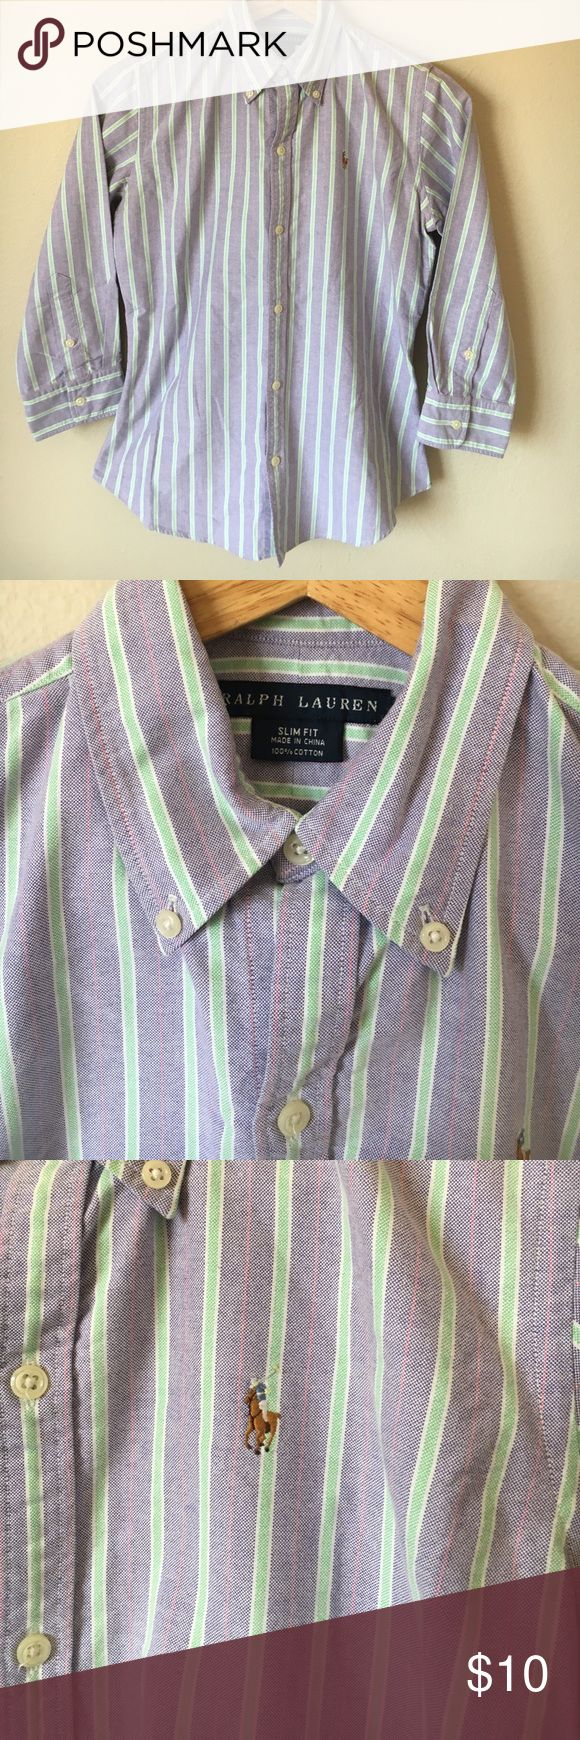 Boys Ralph Lauren Slim Fit Button Down Sz 4 Gently used no stains or holes great Slim Fit shirt to make your little man look sharp. Will fit 8 yr Ralph Lauren Shirts & Tops Button Down Shirts